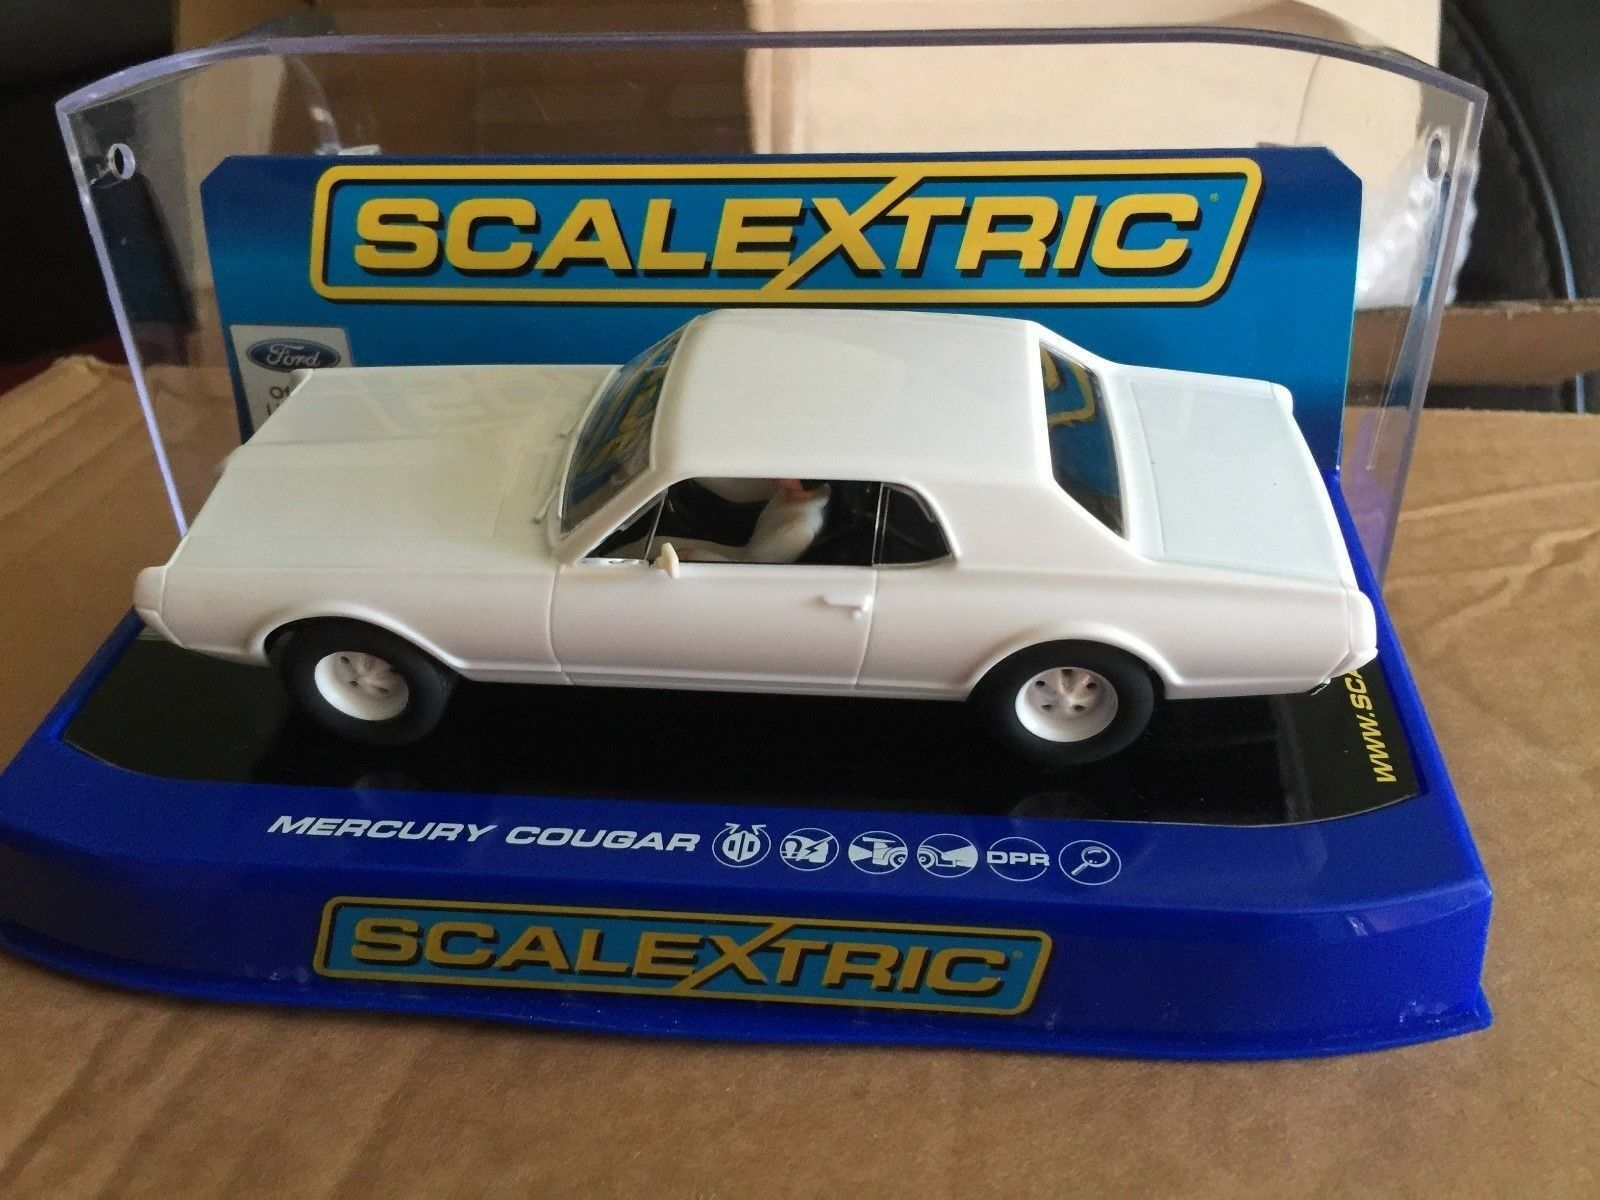 Scalextric Plain blanc MERCURY COUGAR REF C3443TF USA exclusive rare modèle